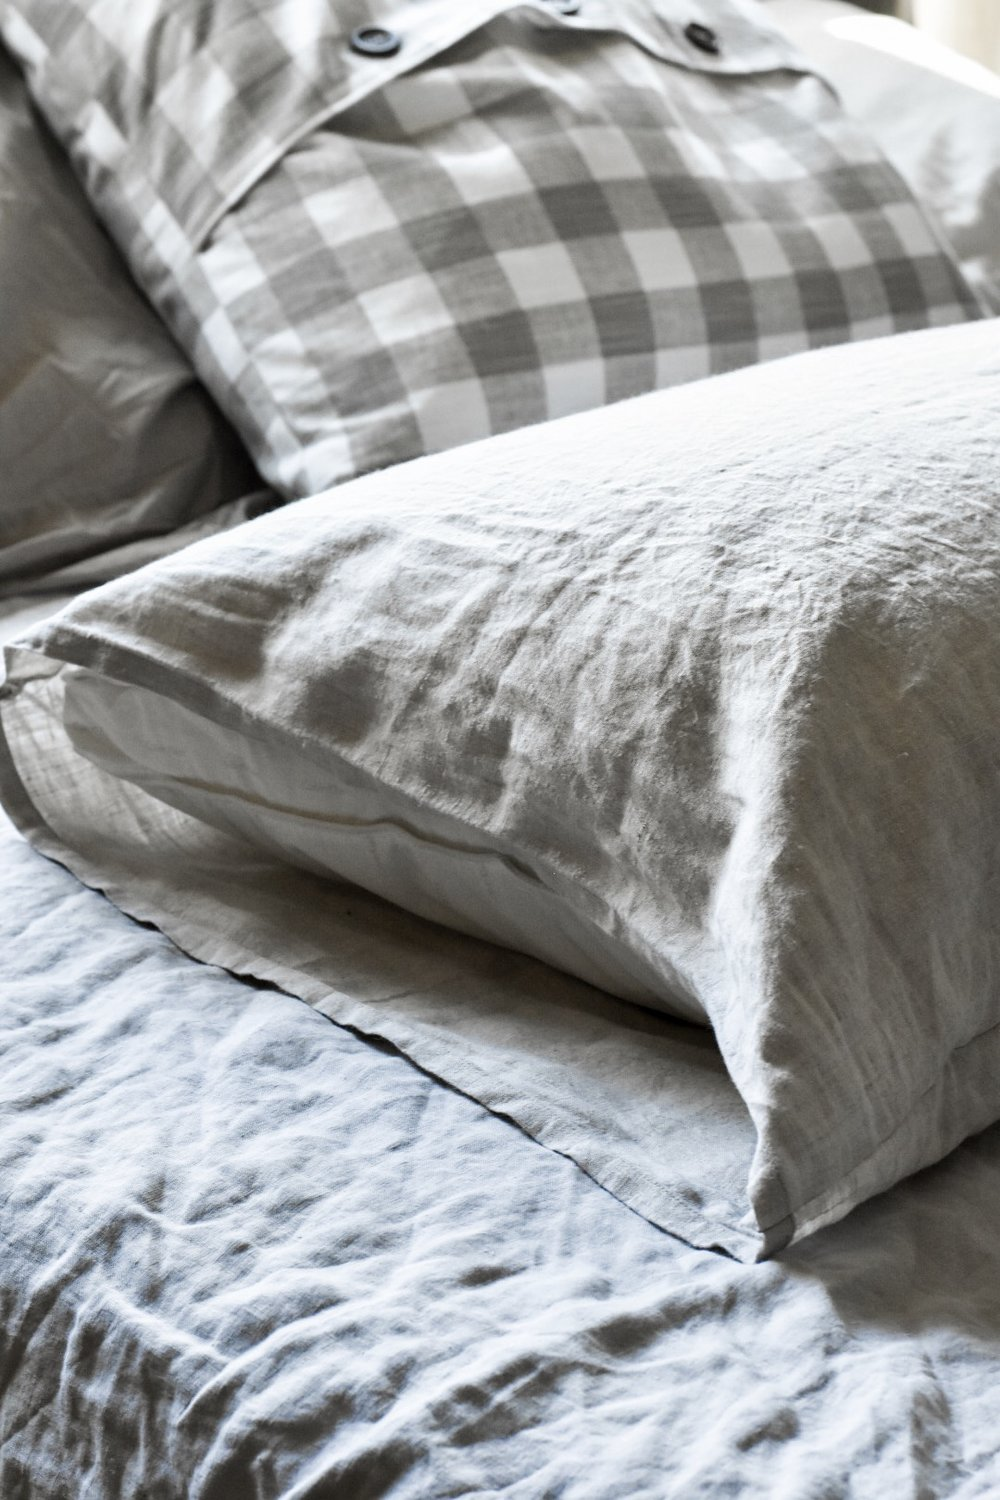 DIY linen pillow cover with tie closures. Simple, easy, basic, quick tutorial with photos for a step by step process of making a pillowcase | Rocky Hedge Farm